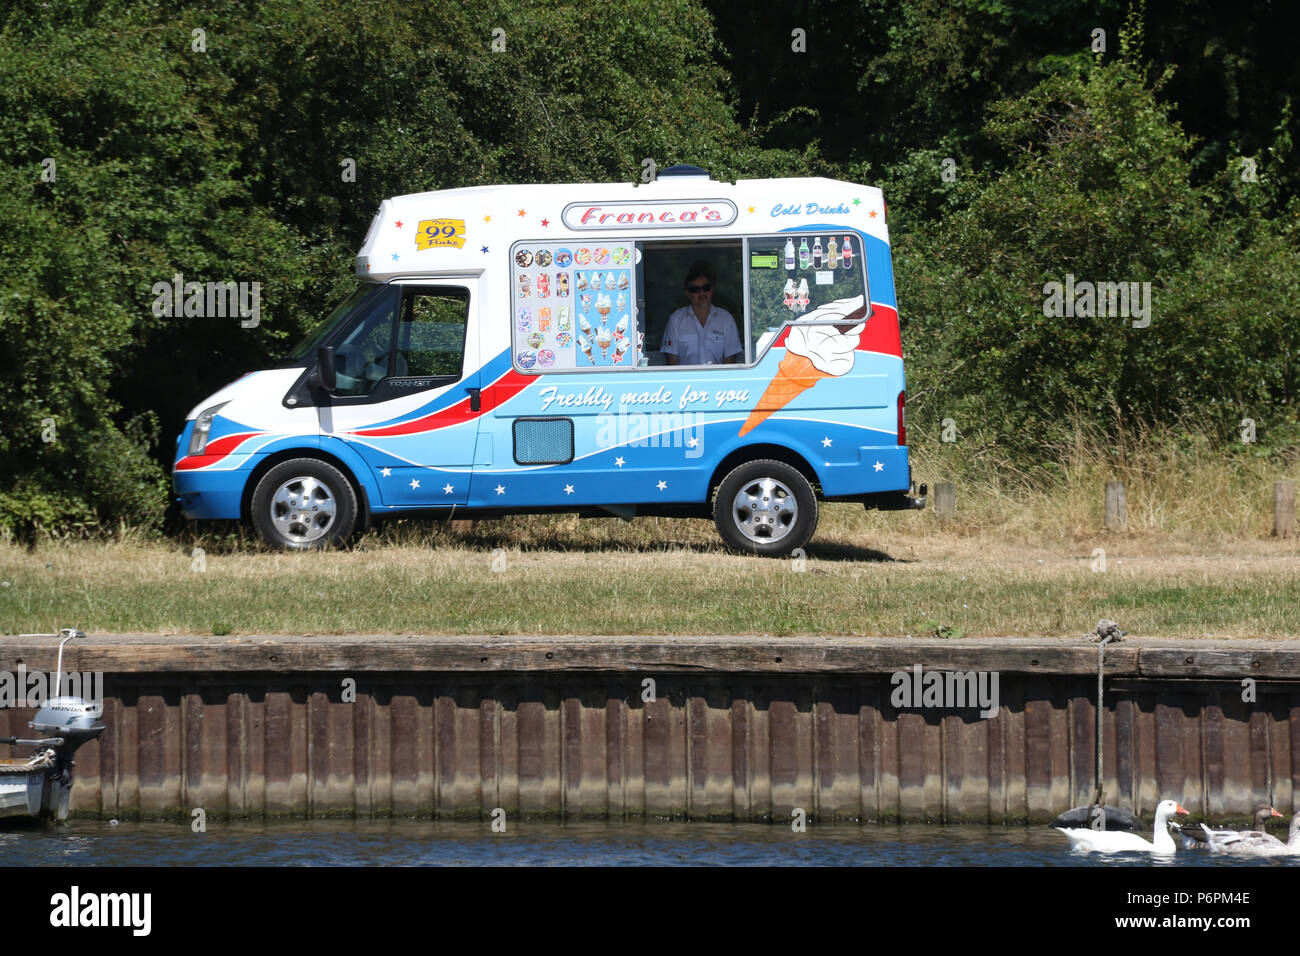 ddb596e7f9 An ice cream van parked next to the River Thames at Bourne End. - Stock